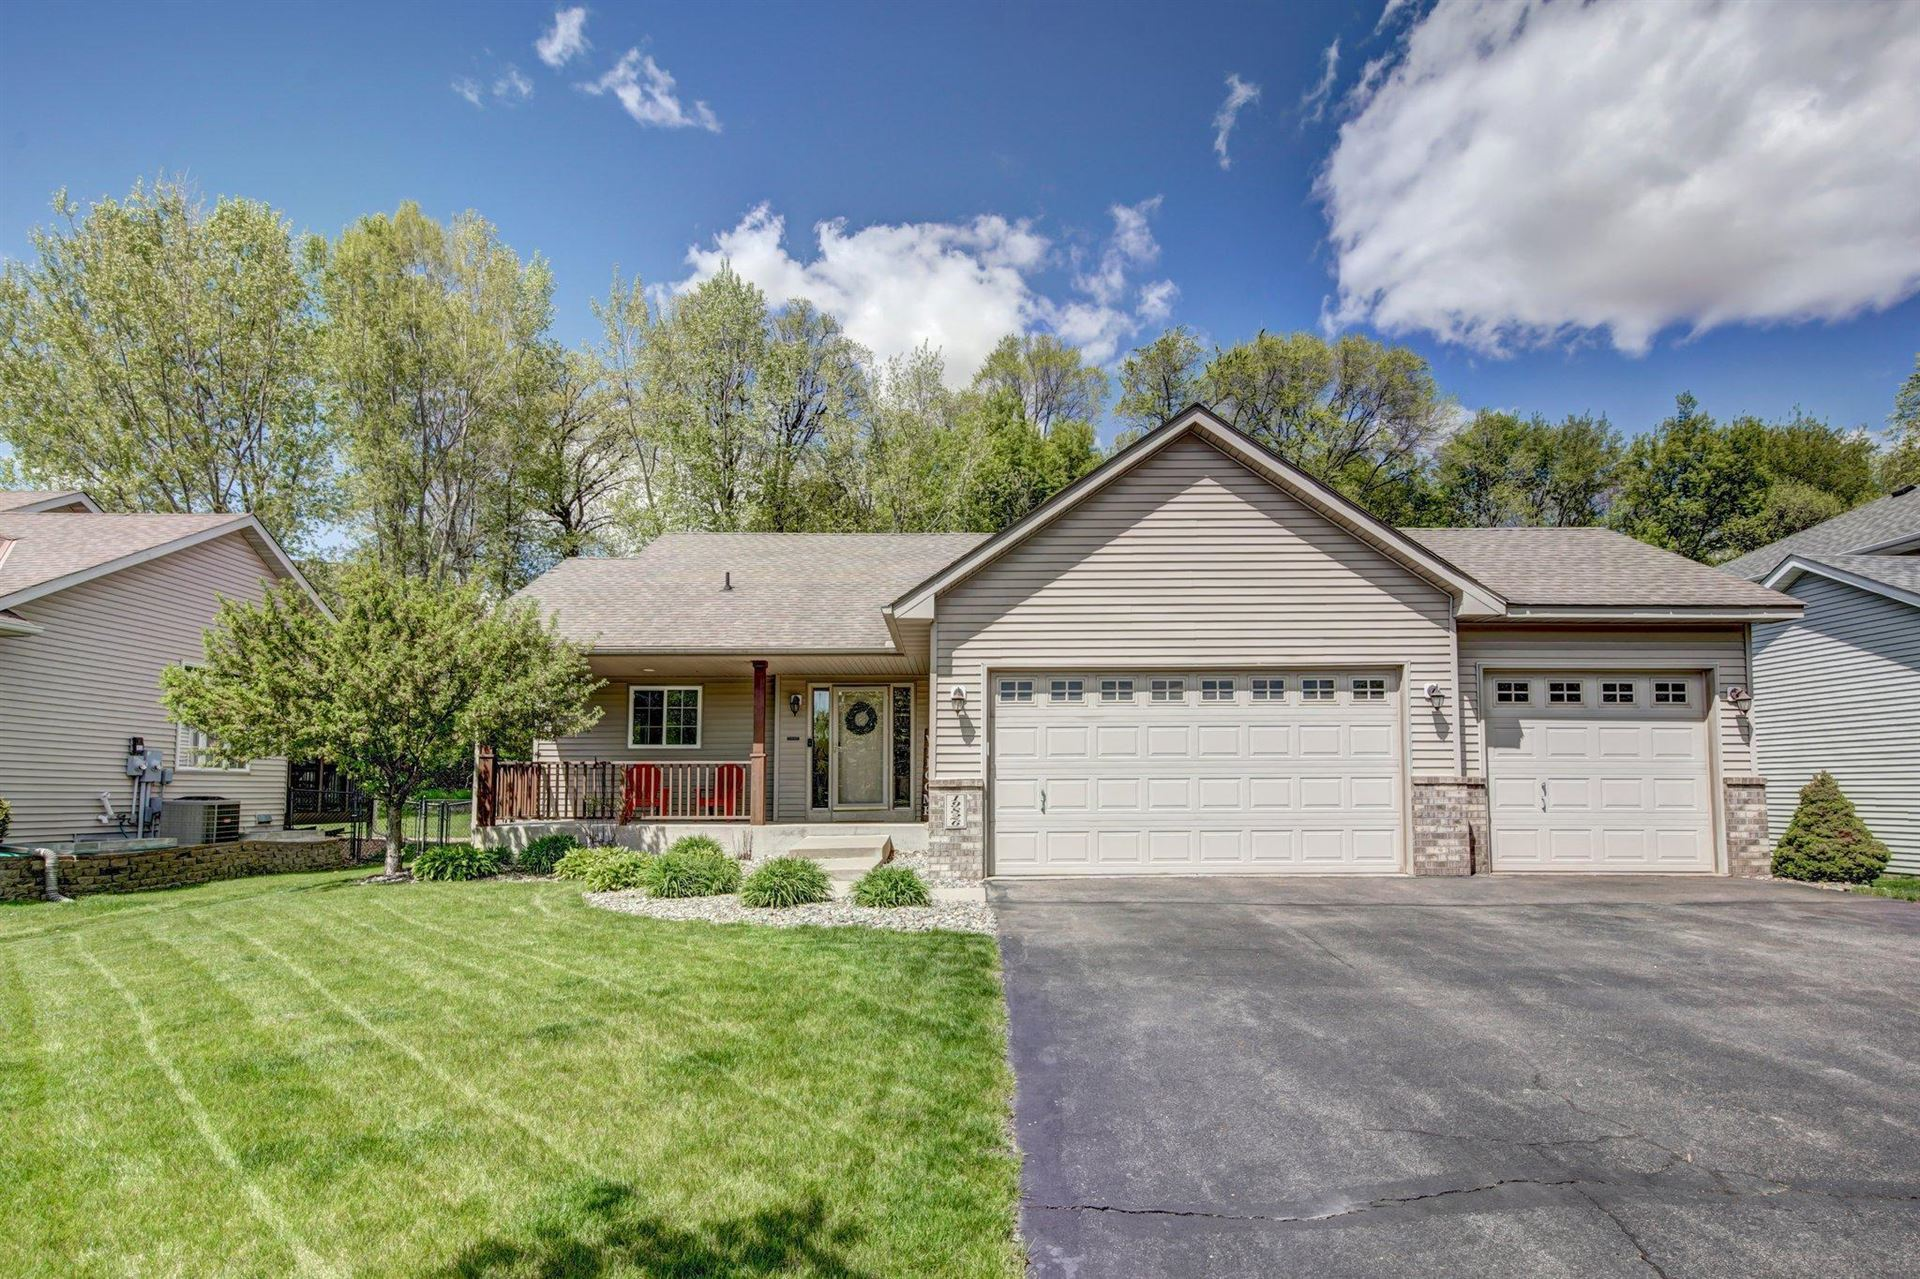 Photo of 19826 Emperor Court, Farmington, MN 55024 (MLS # 5748036)